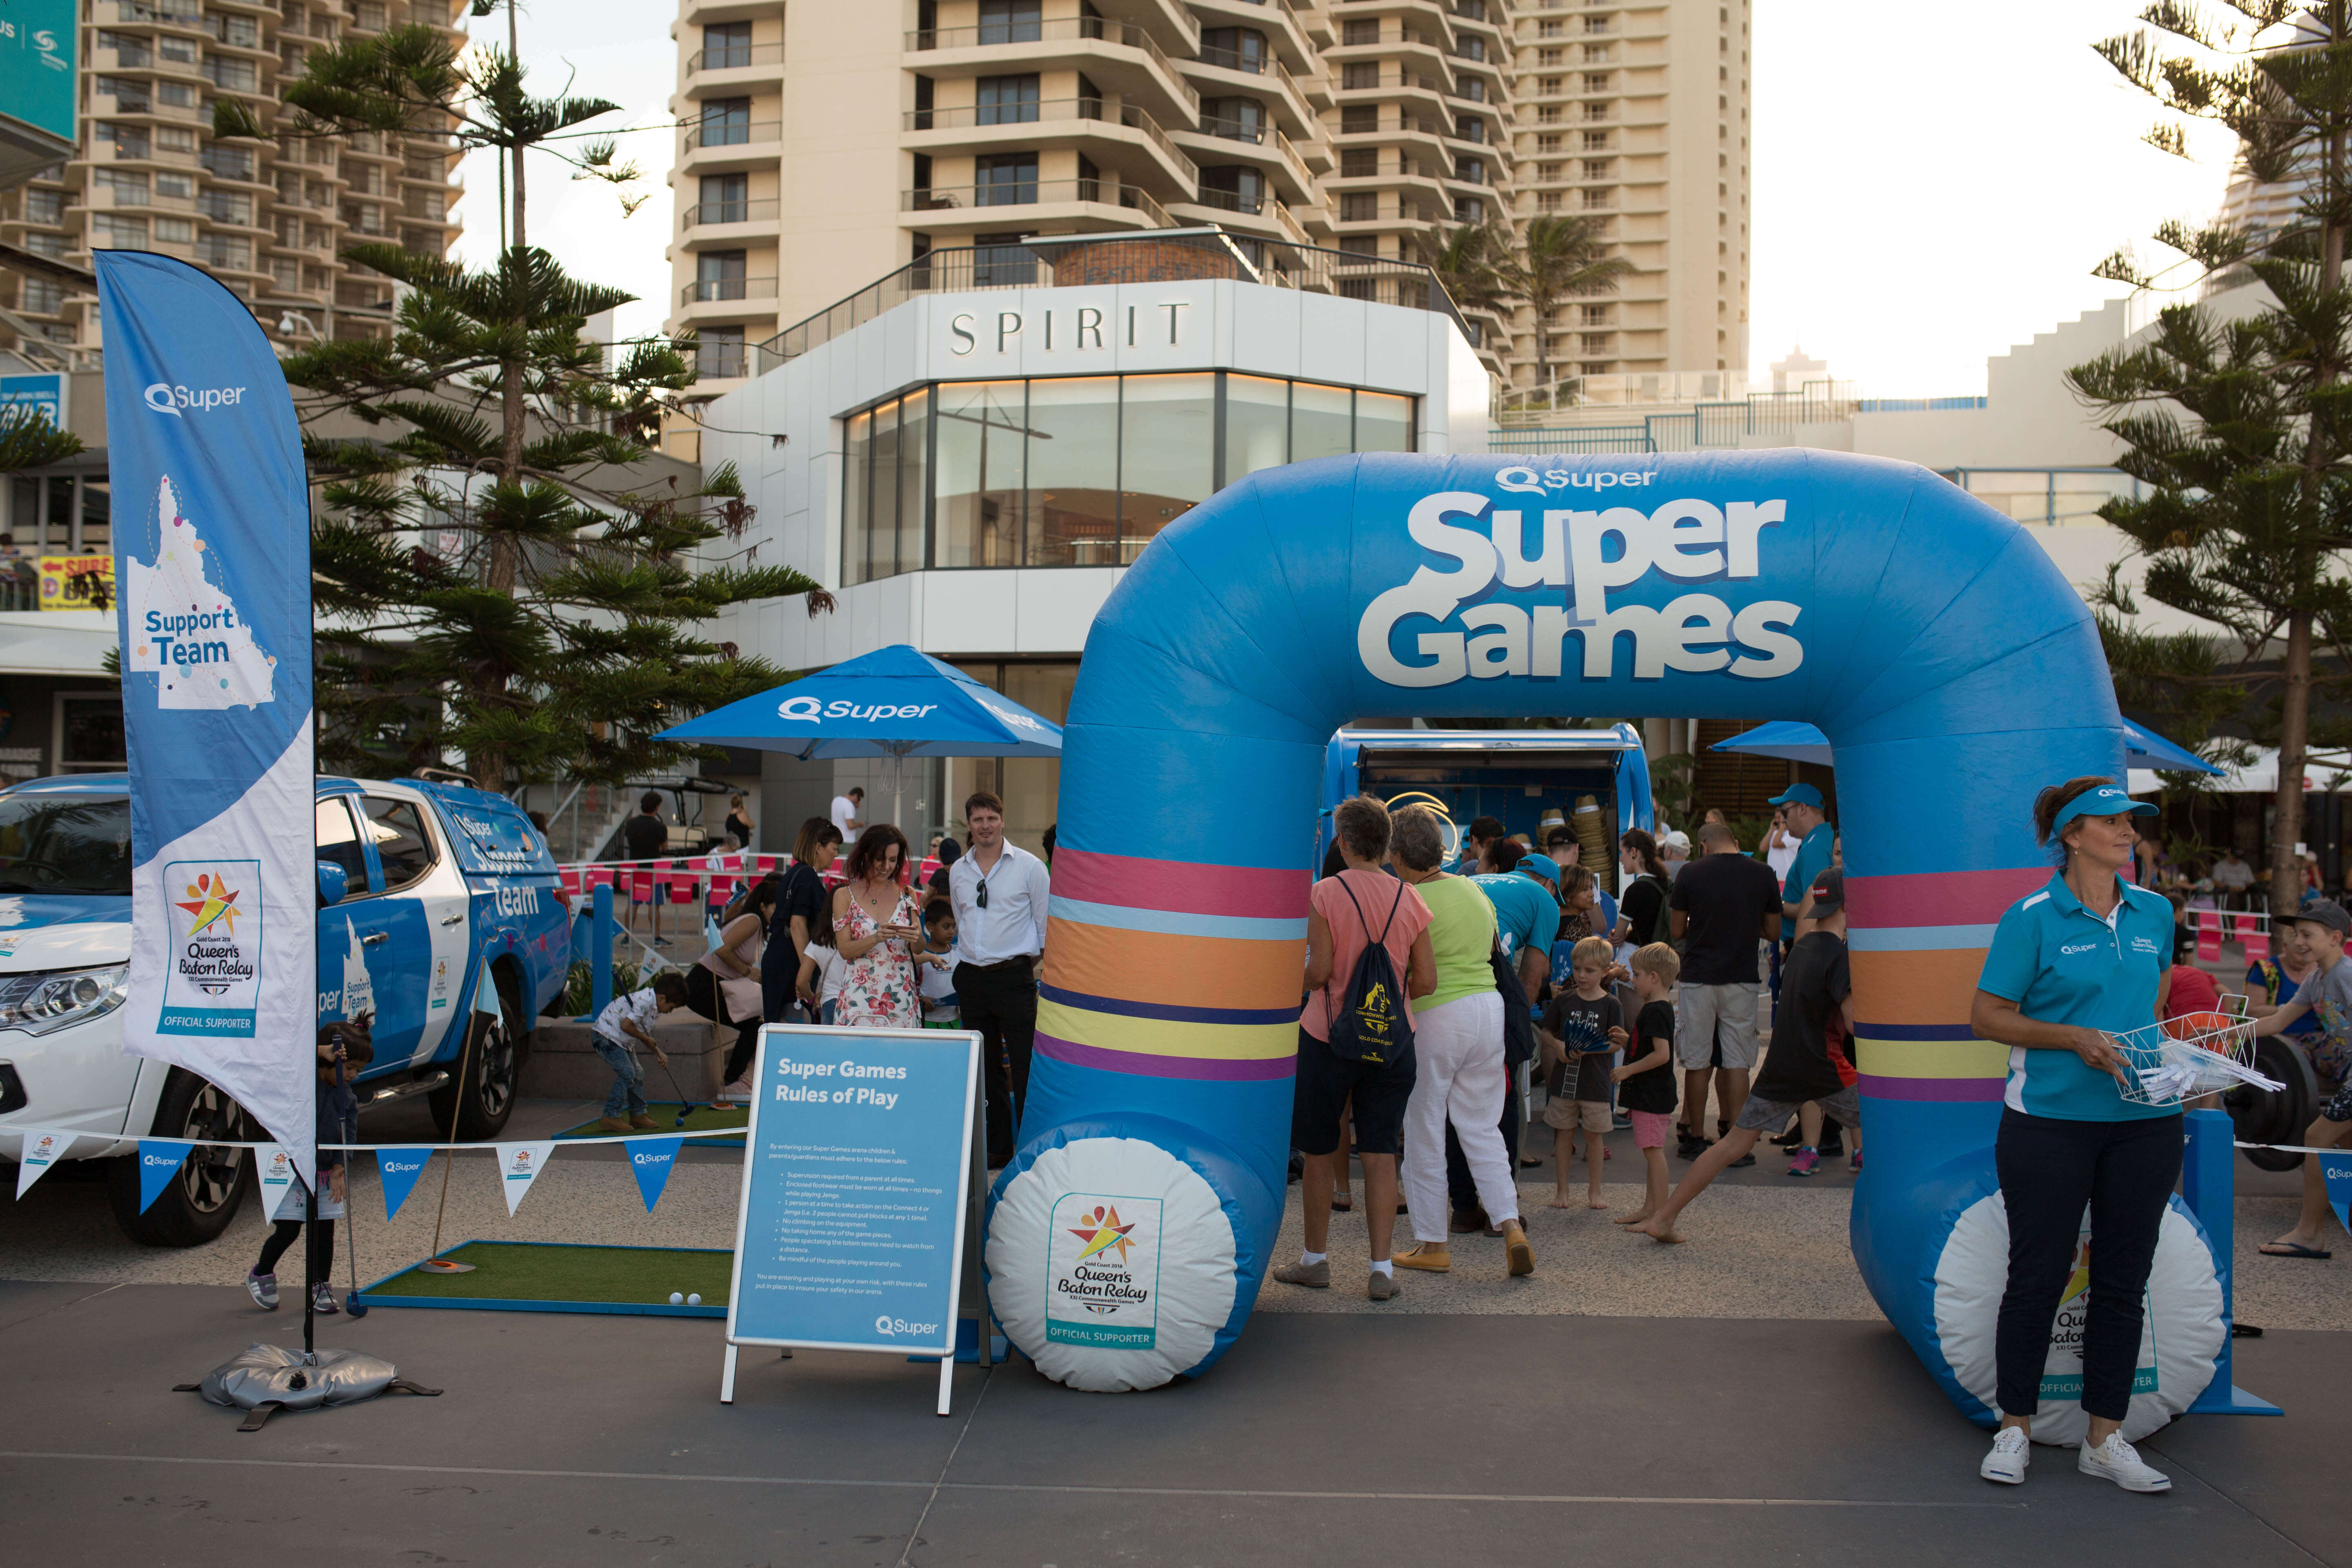 qsuper area in surfers paradise called super games